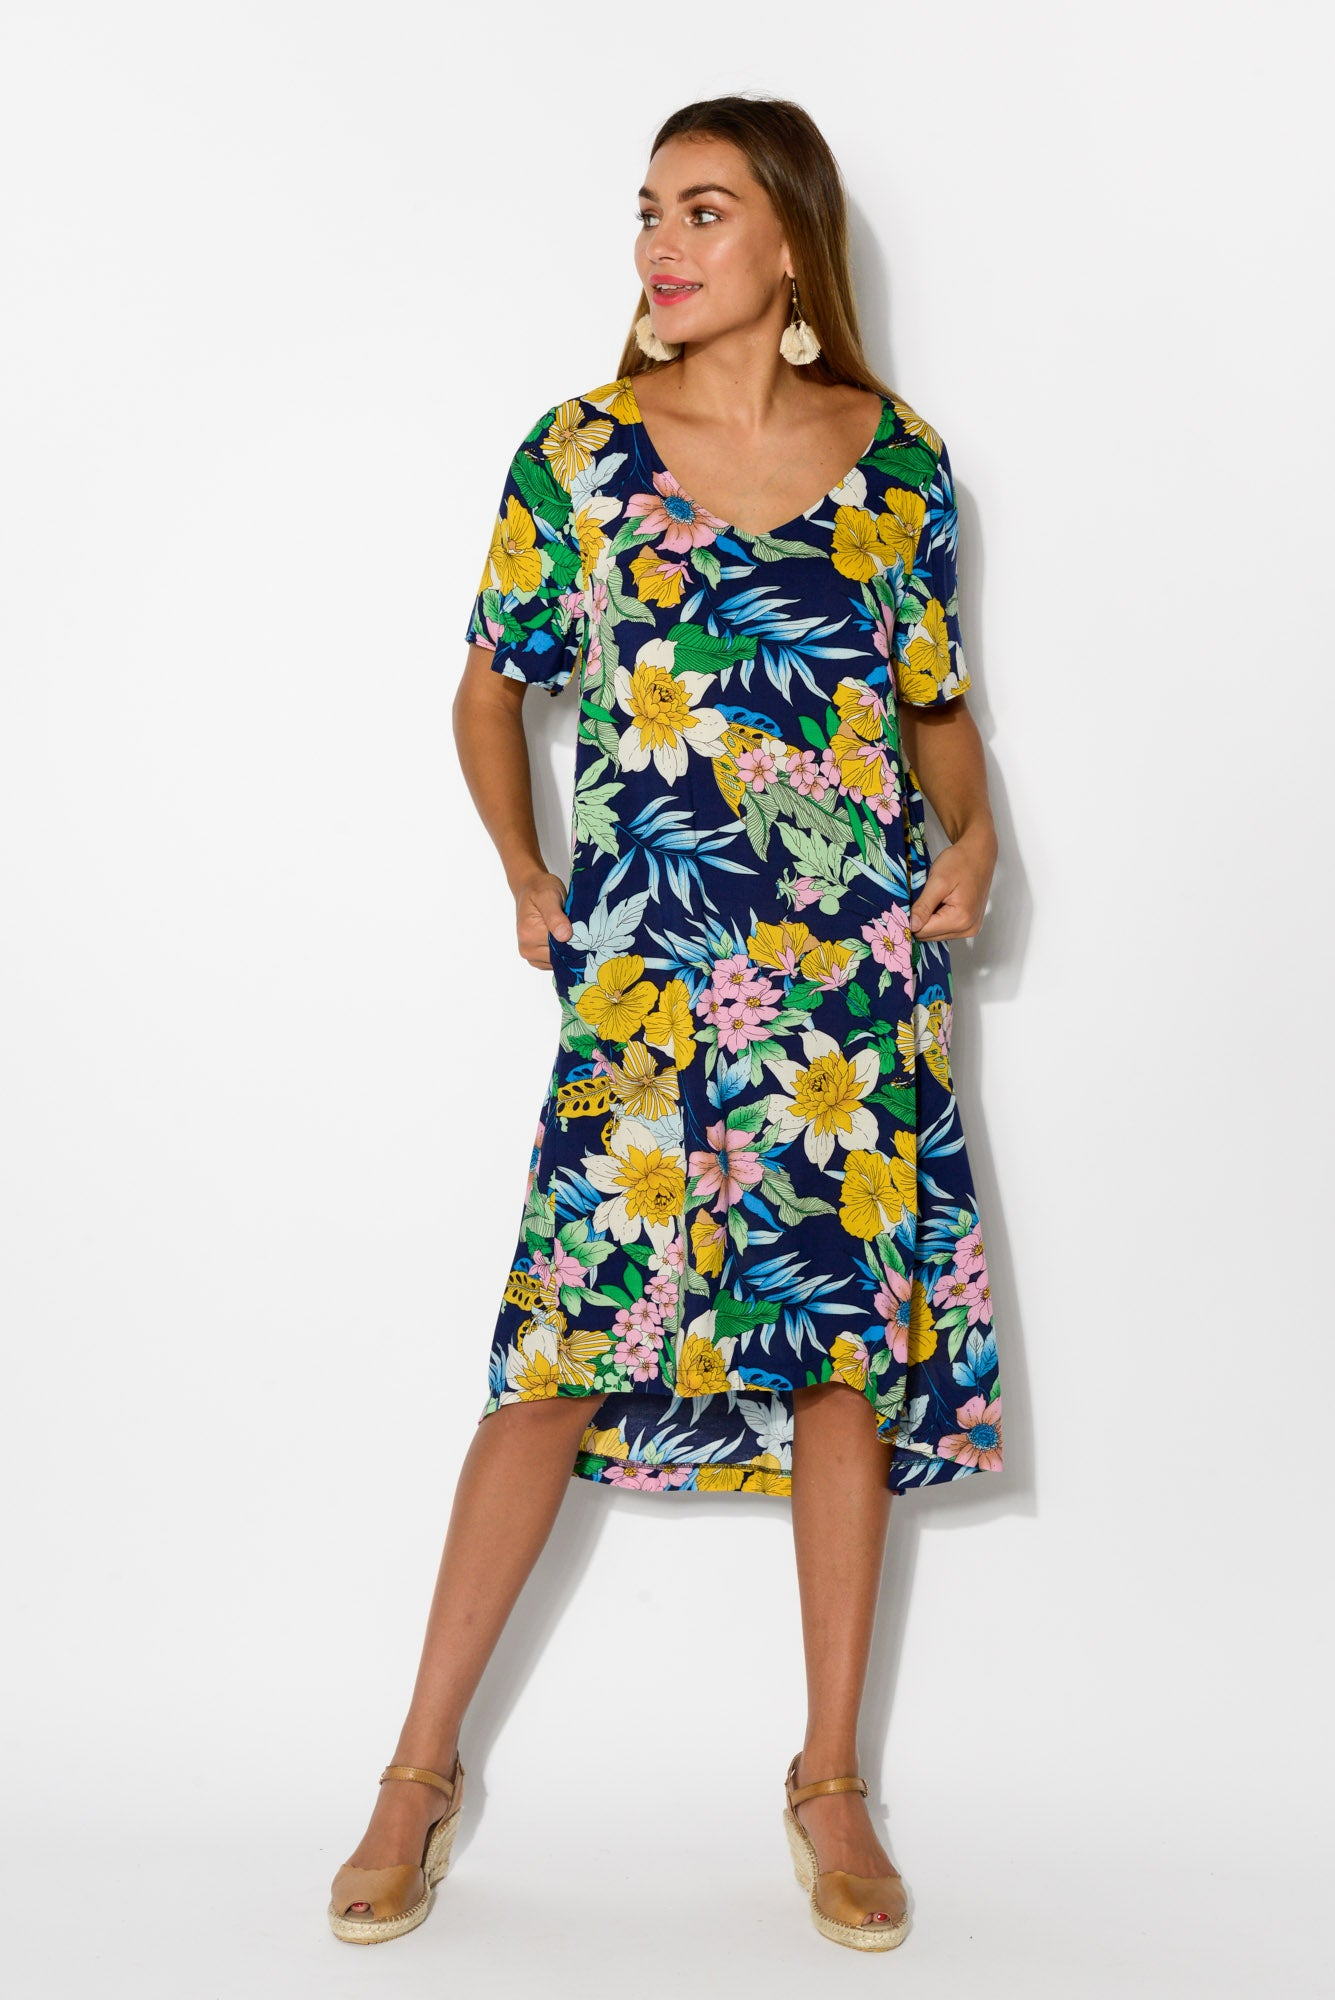 2f10a76033de Leta Navy Floral Swing Dress - Blue Bungalow. Hover to zoom